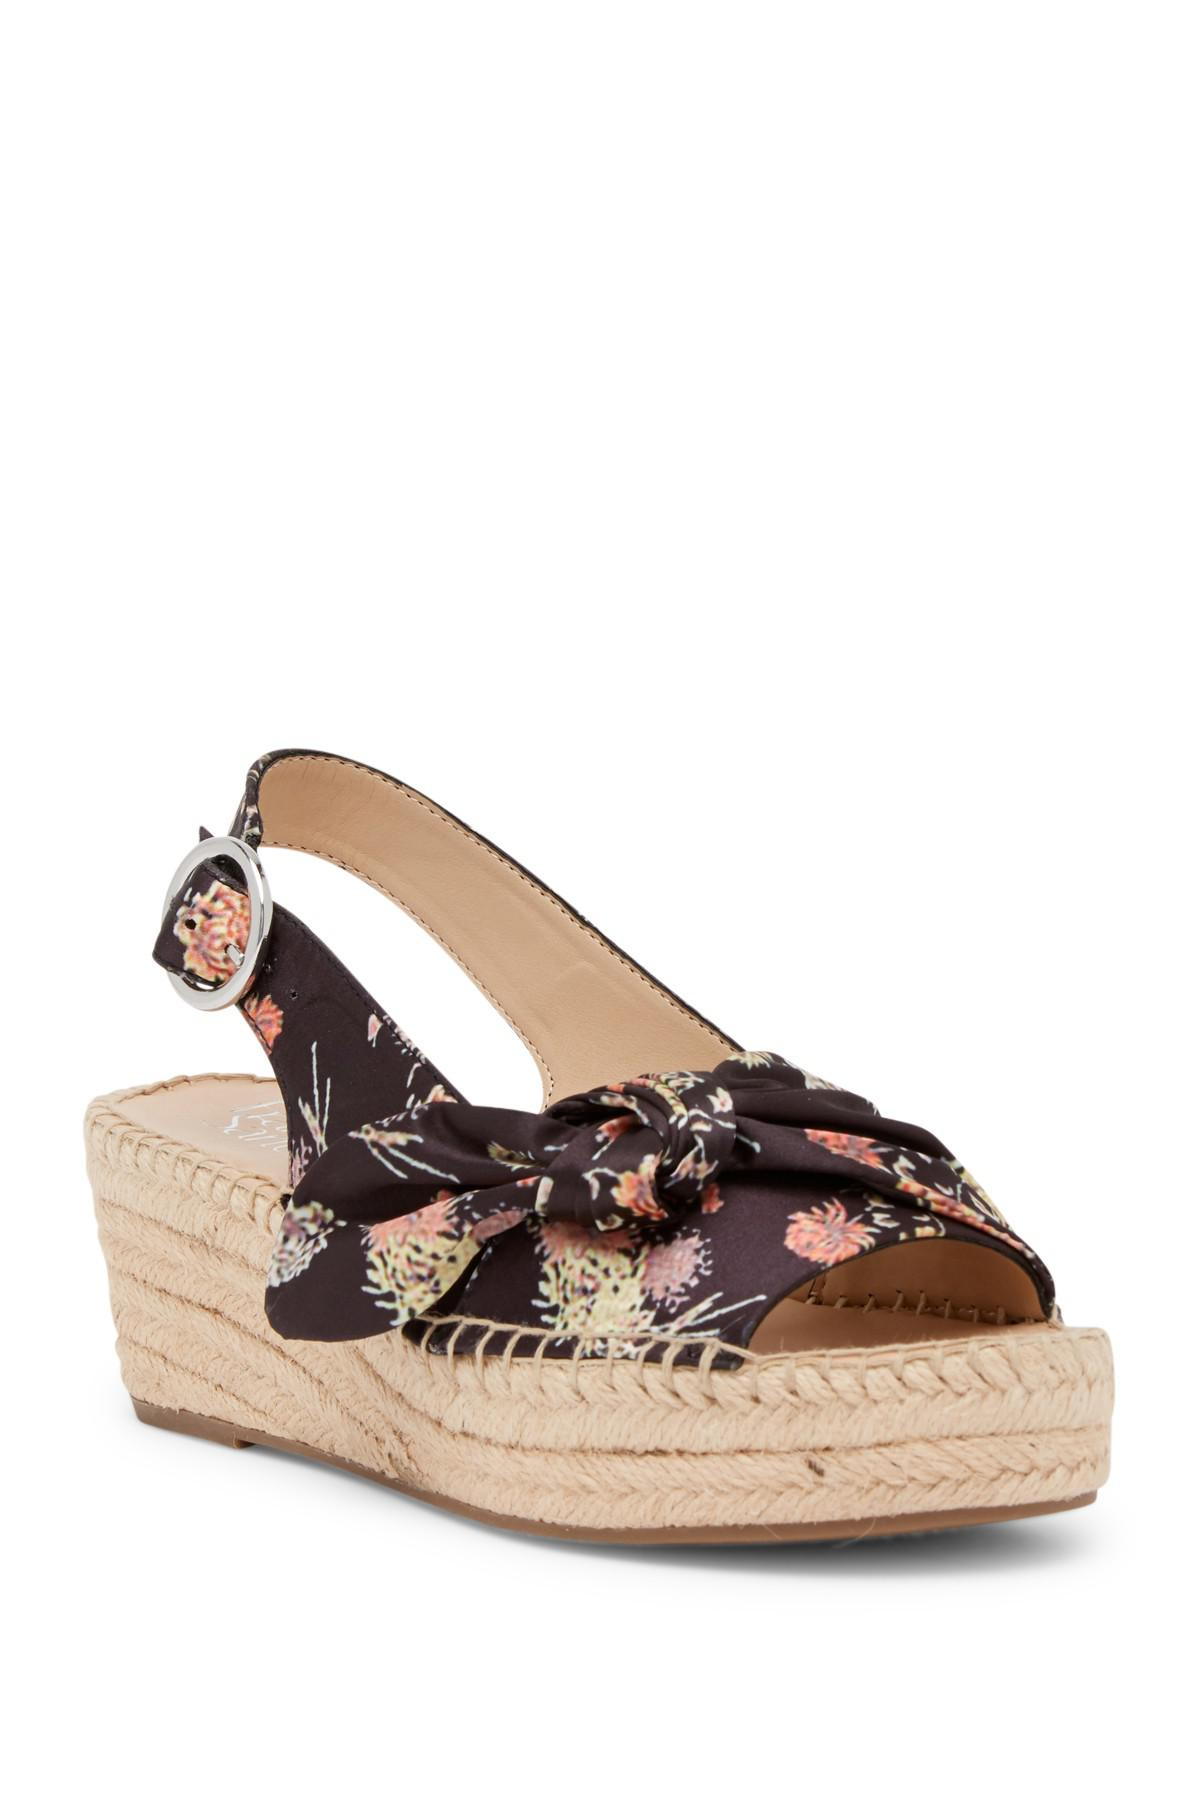 15781821d64f Gallery. Previously sold at  Nordstrom Rack · Women s Hidden Wedges ...